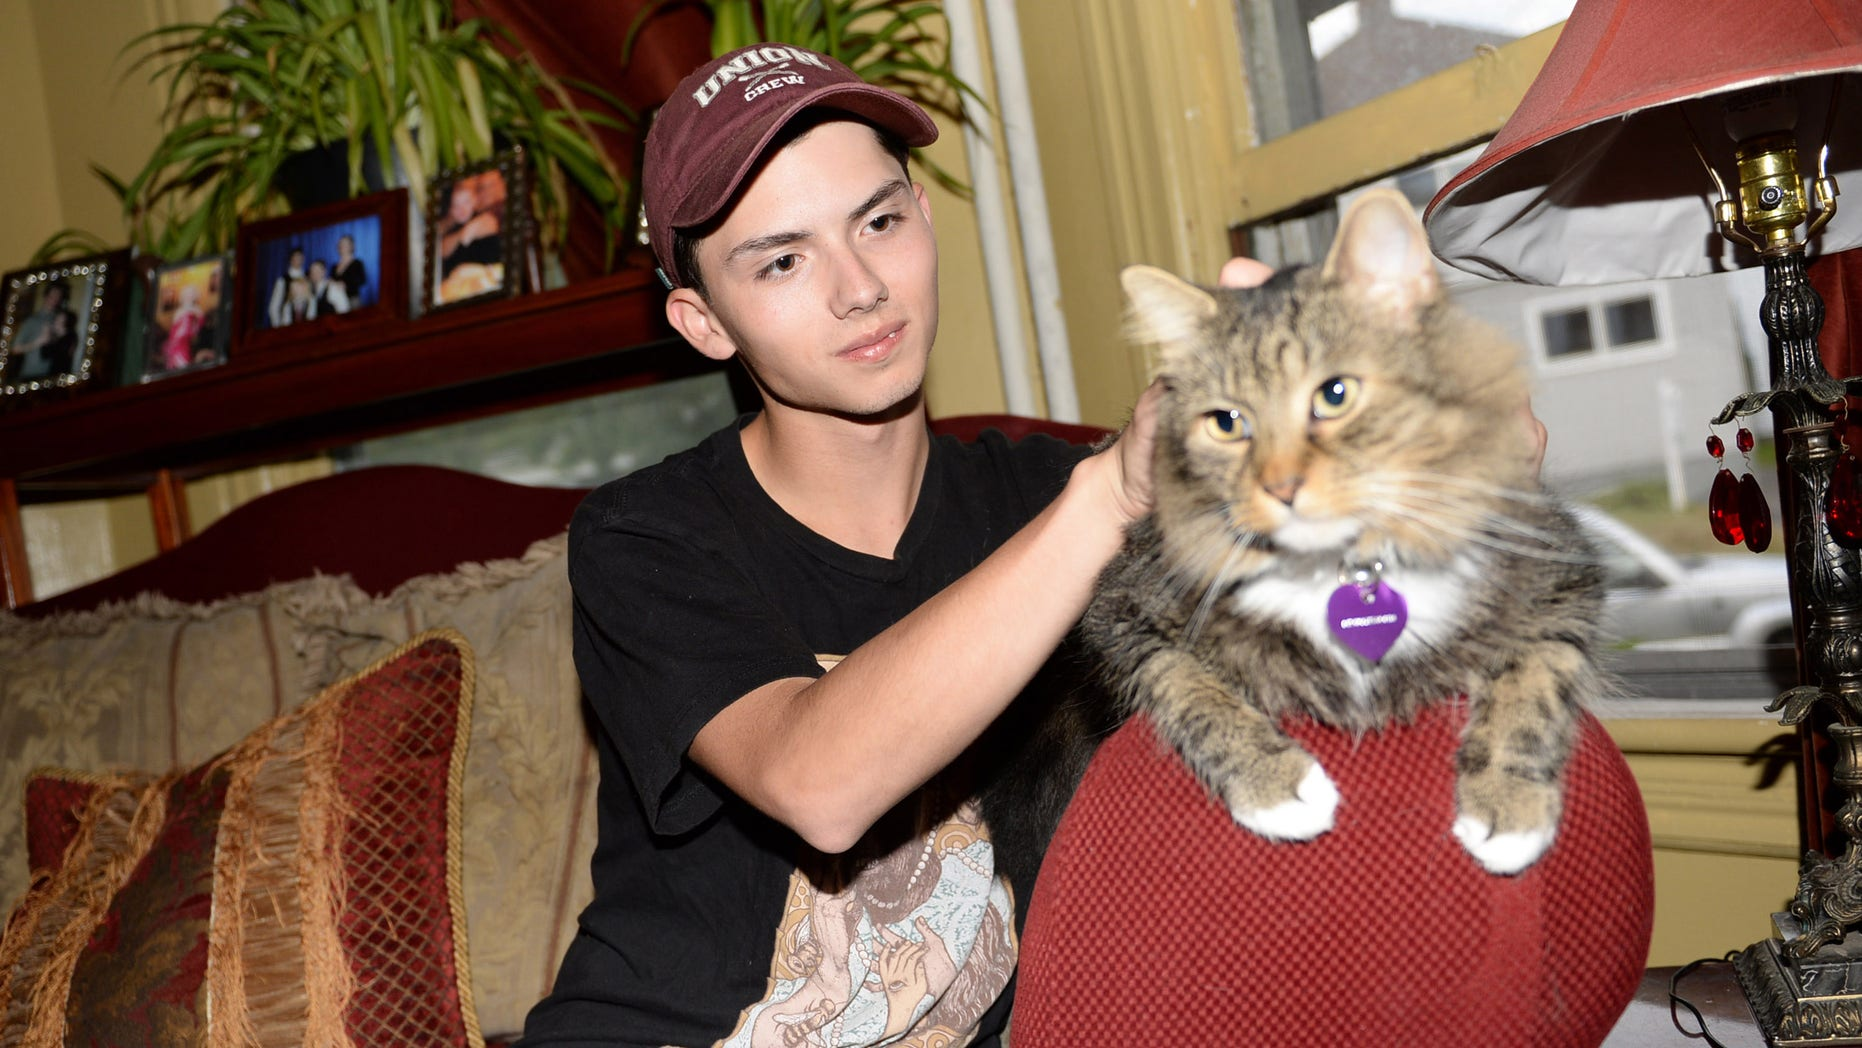 FILE - In a Wednesday, Sept. 10, 2014 file photo, Draven Rodriguez and his cat Mr. Bigglesworth at their home in Schenectady, N.Y. Rodriguezâs parents tell the Times-Union of Albany their son committed suicide Thursday, Feb. 19, 2015 at their Schenectady home. He was 17. Rodriguez had wanted his senior yearbook portrait to show him holding his cat Mr. Bigglesworth, with lasers in the background.  The school denied his request but said the photo could appear somewhere in the Schenectady High School yearbook.(AP Photo/The Daily Gazette, Patrick Dodson)